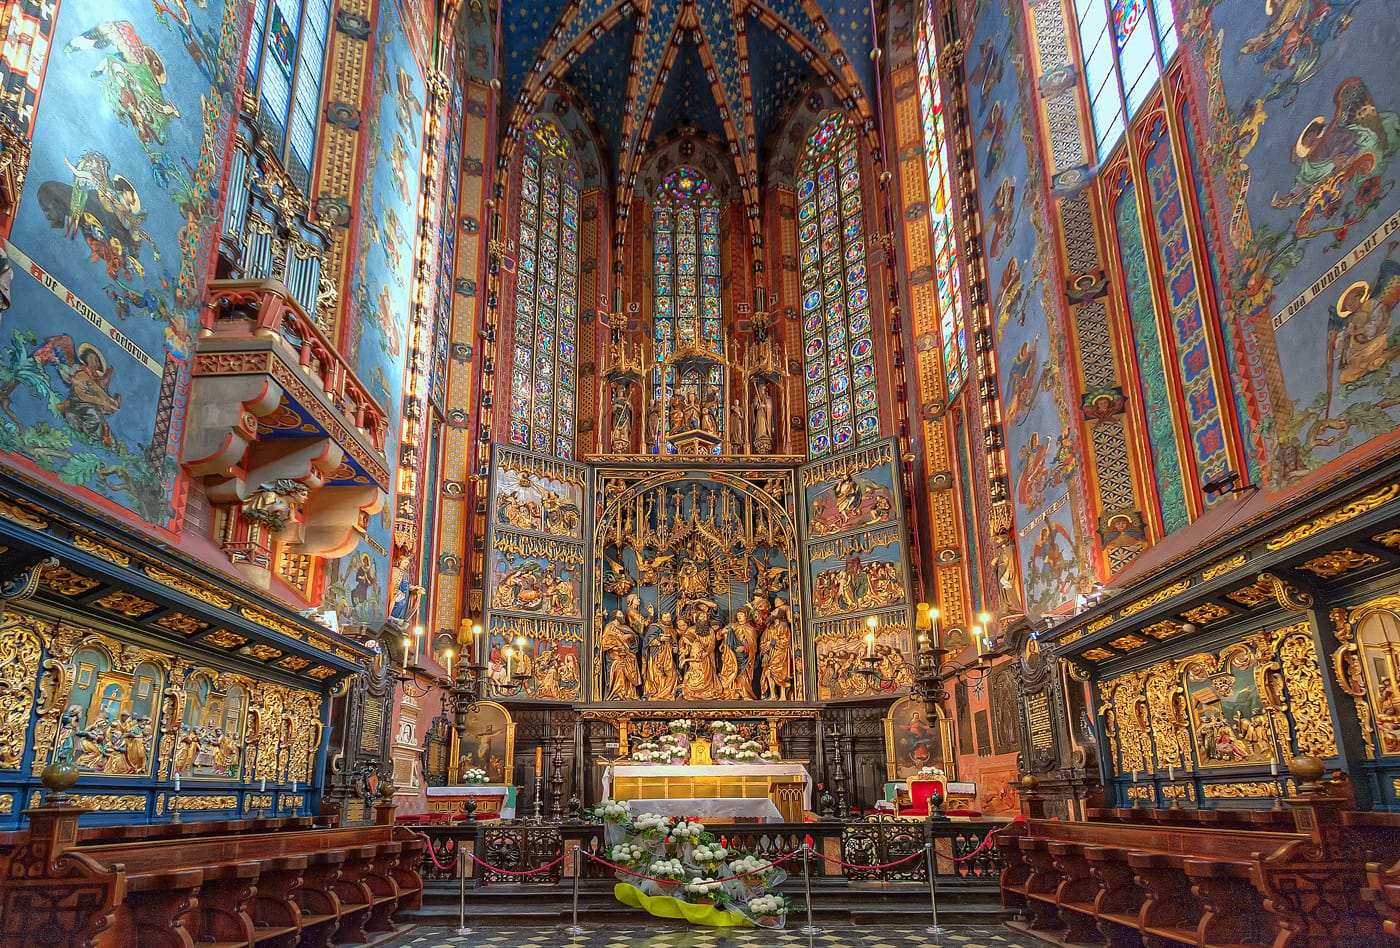 Altarpiece of Veit Stoss in the St. Mary's Basilica in Kraków. HDR Photo inside the church